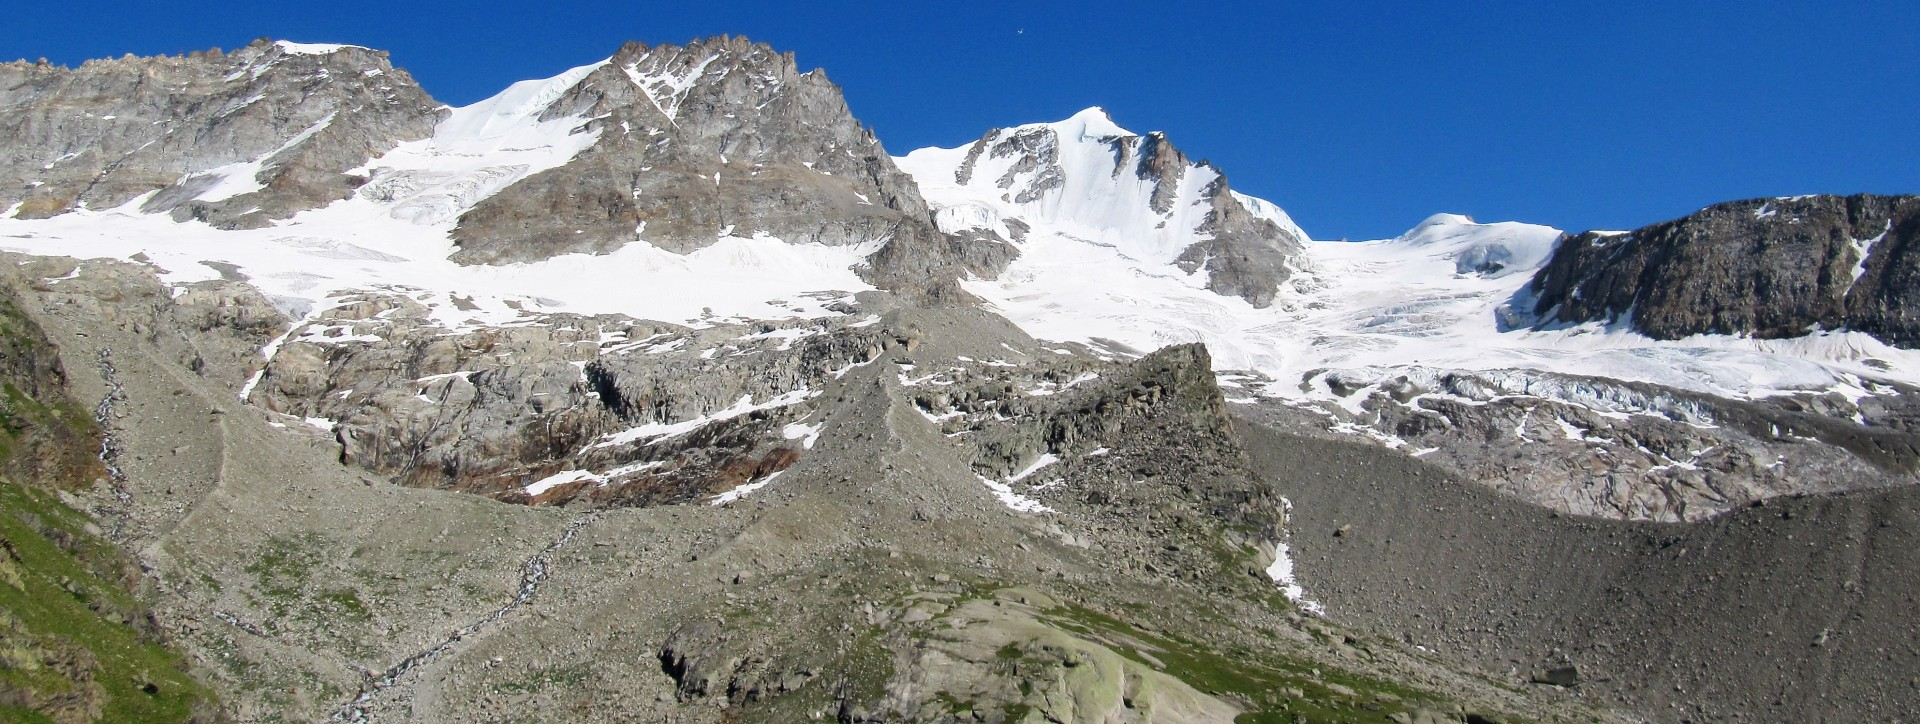 Gran Paradiso - Retour Mountain Adventure